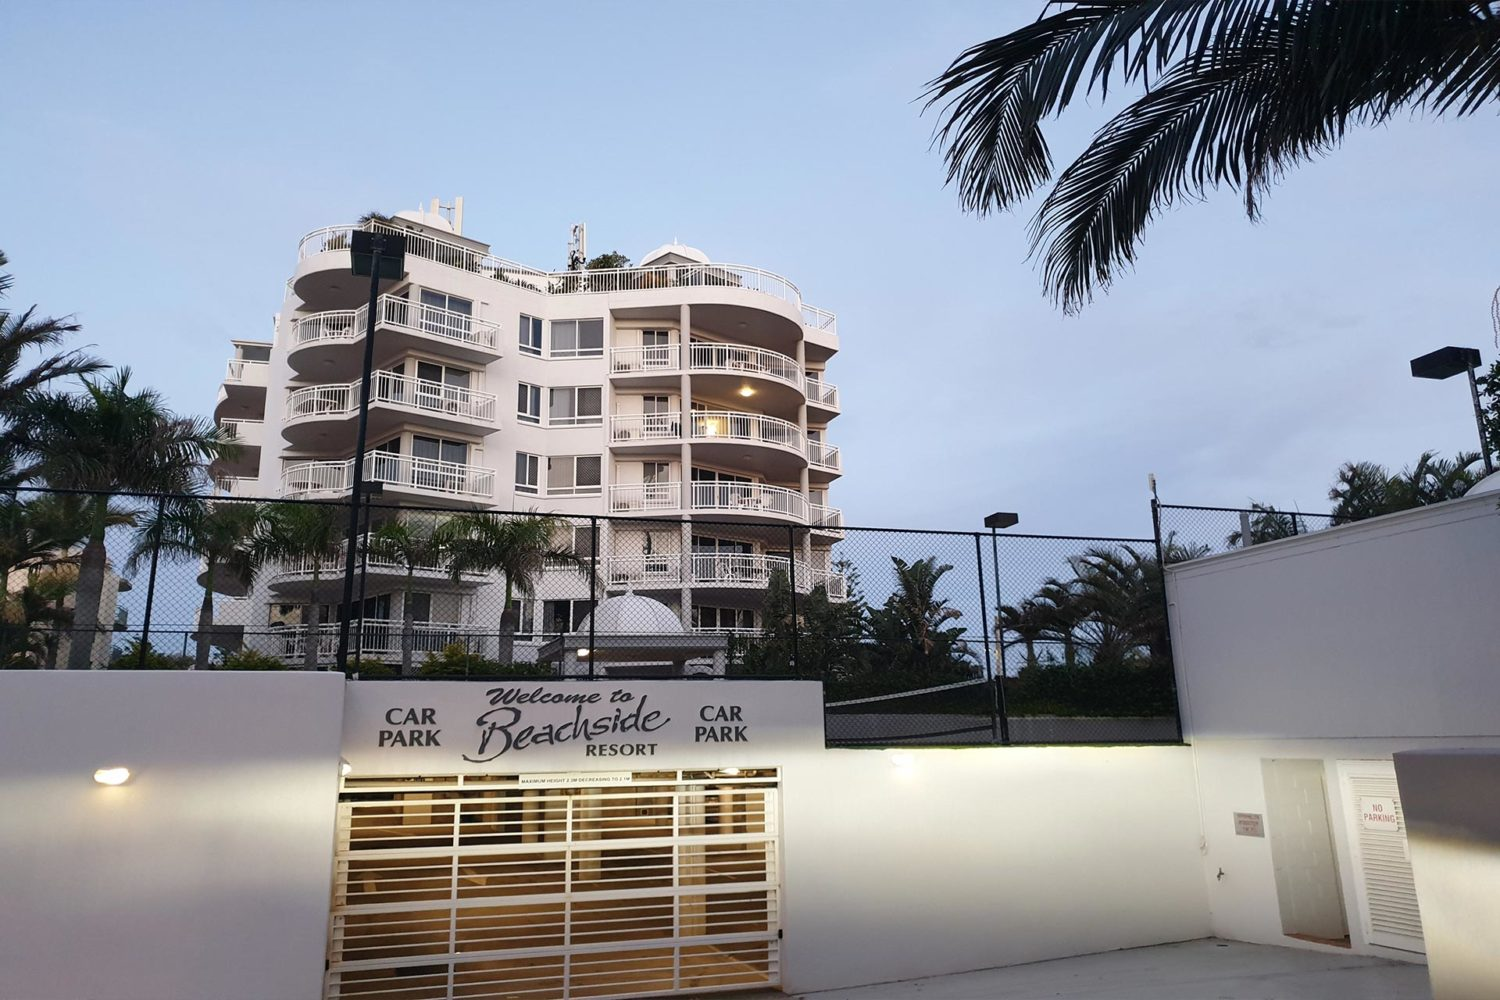 facilities-beachside-buddina-accommodation-kawana2